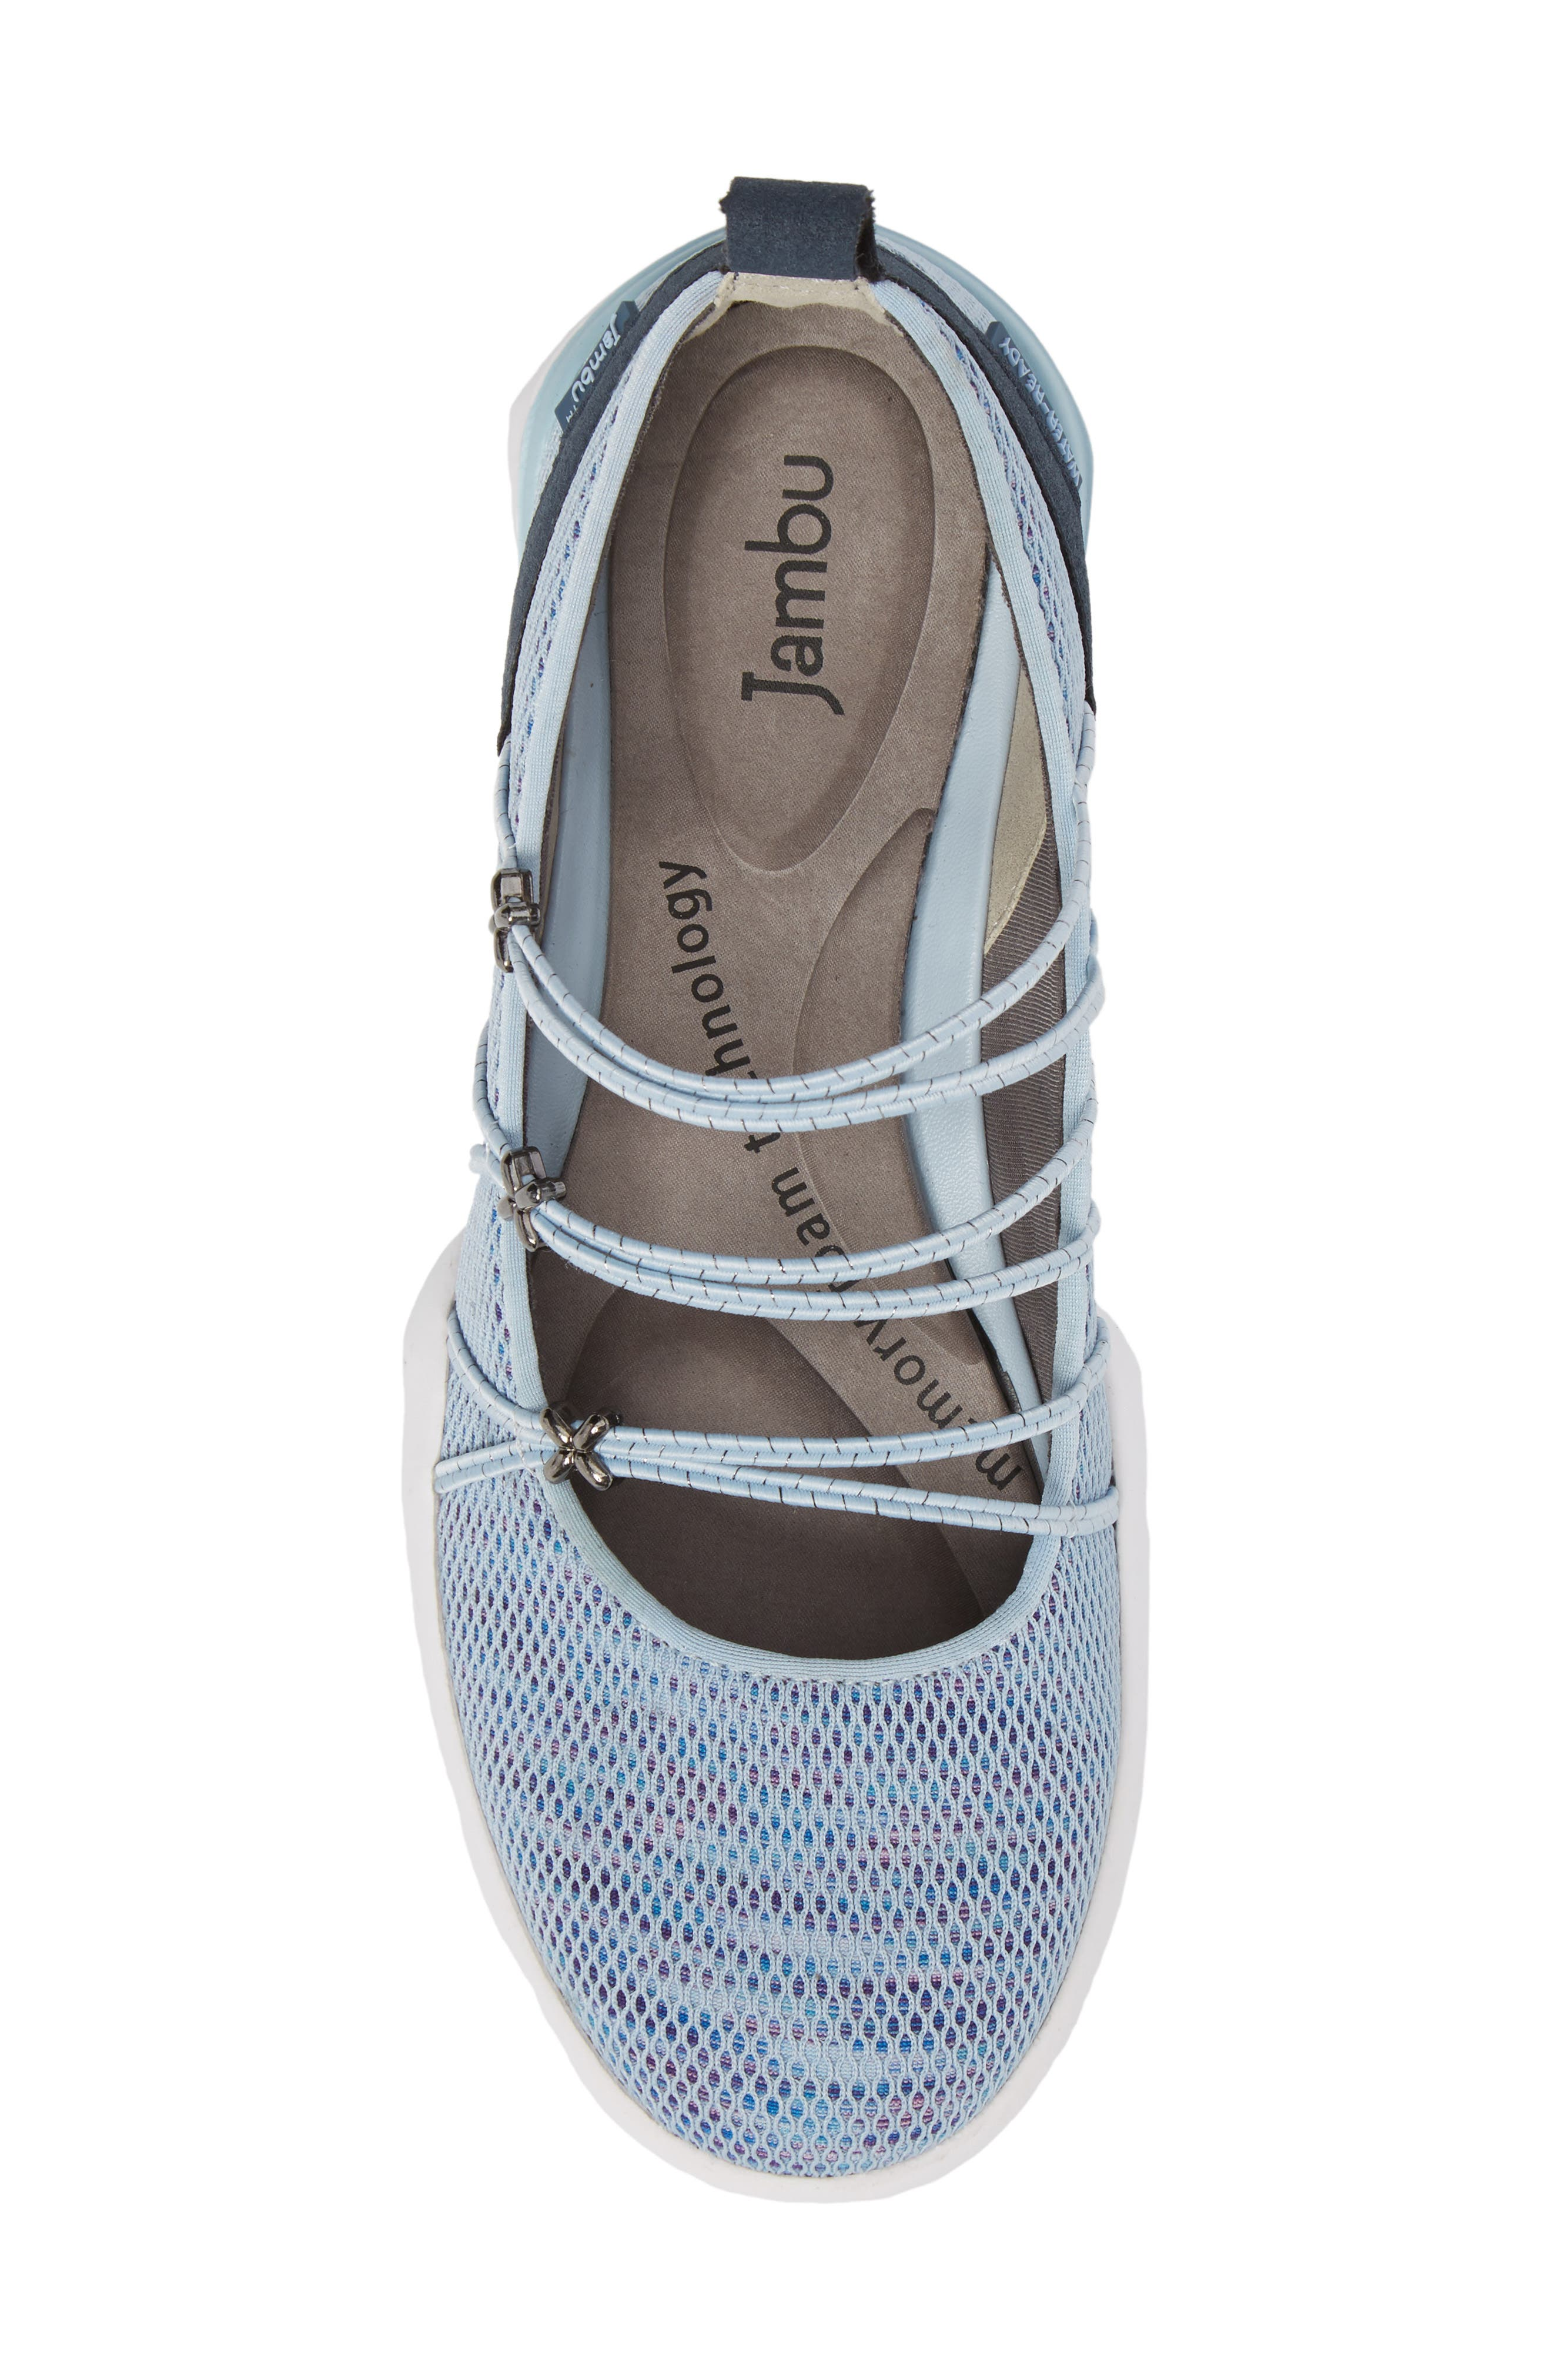 Cheyenne Water Ready Slip-on,                             Alternate thumbnail 5, color,                             Powder Blue